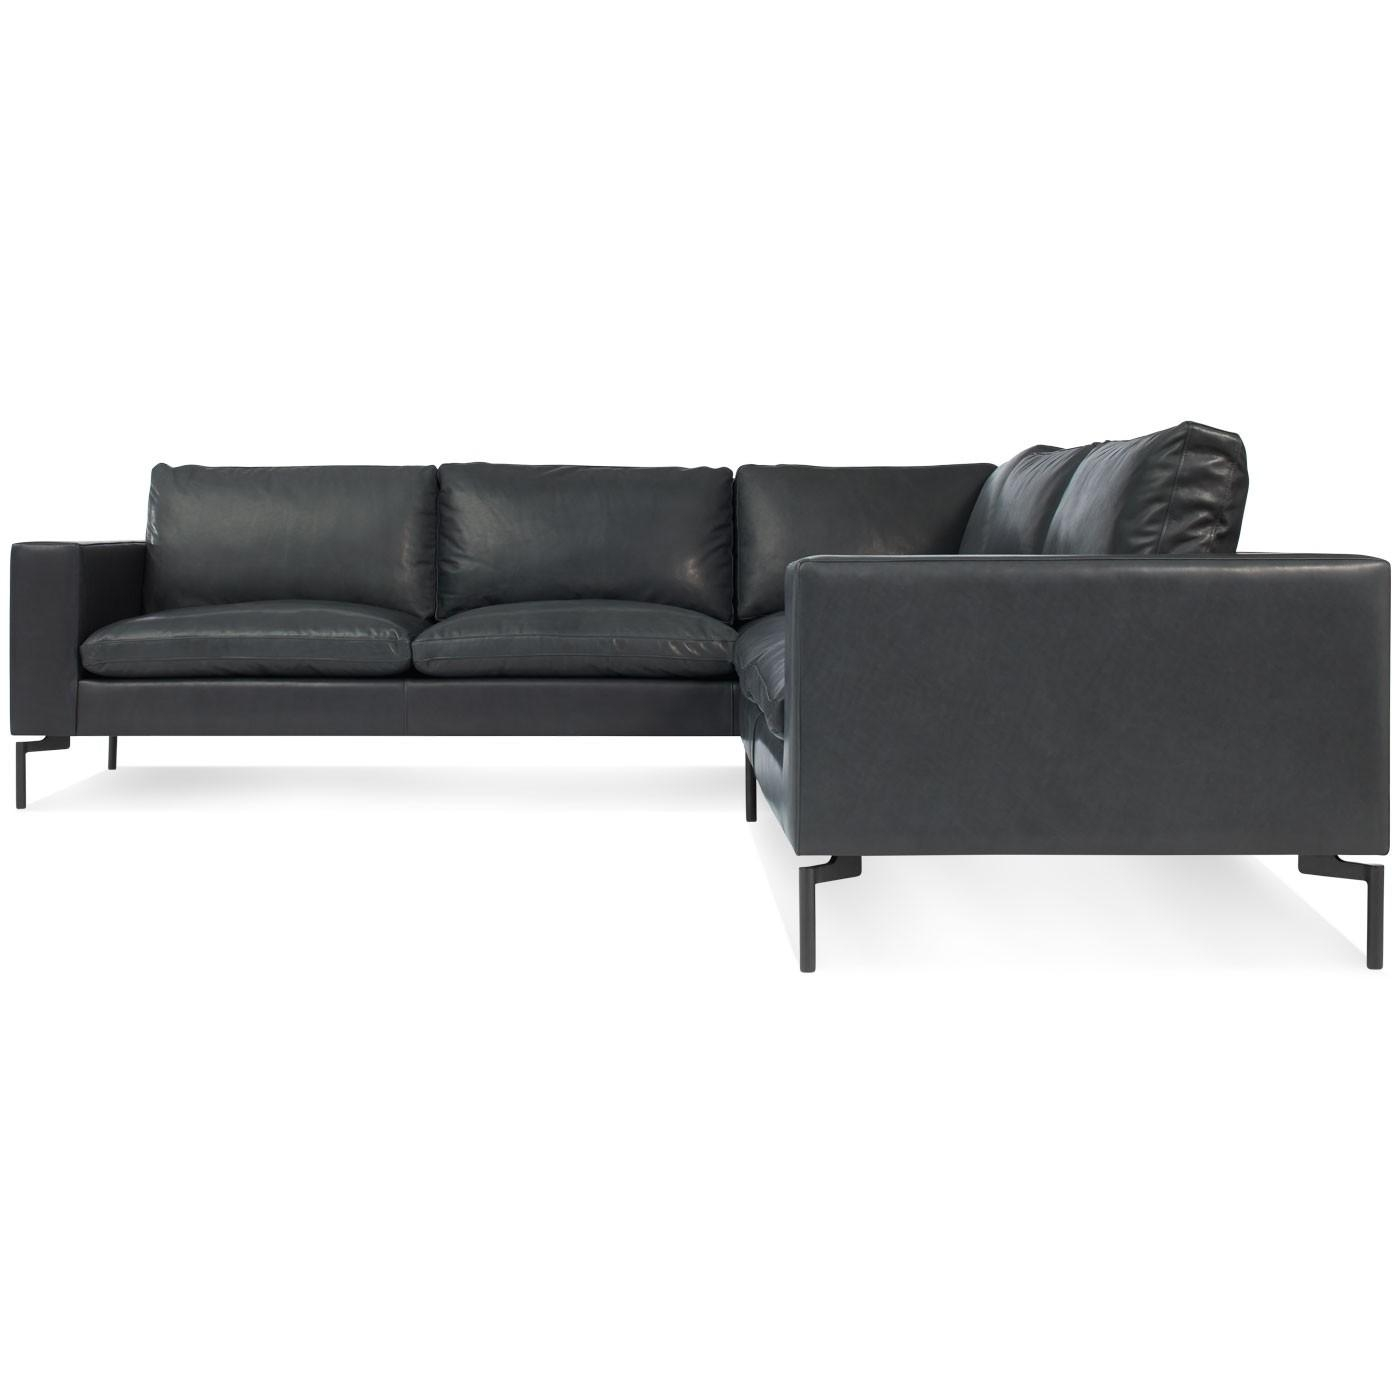 New Standard Small Leather Sectional – Modern Leather Sofa | Blu Dot Within Modern Small Sectional Sofas (Image 14 of 20)